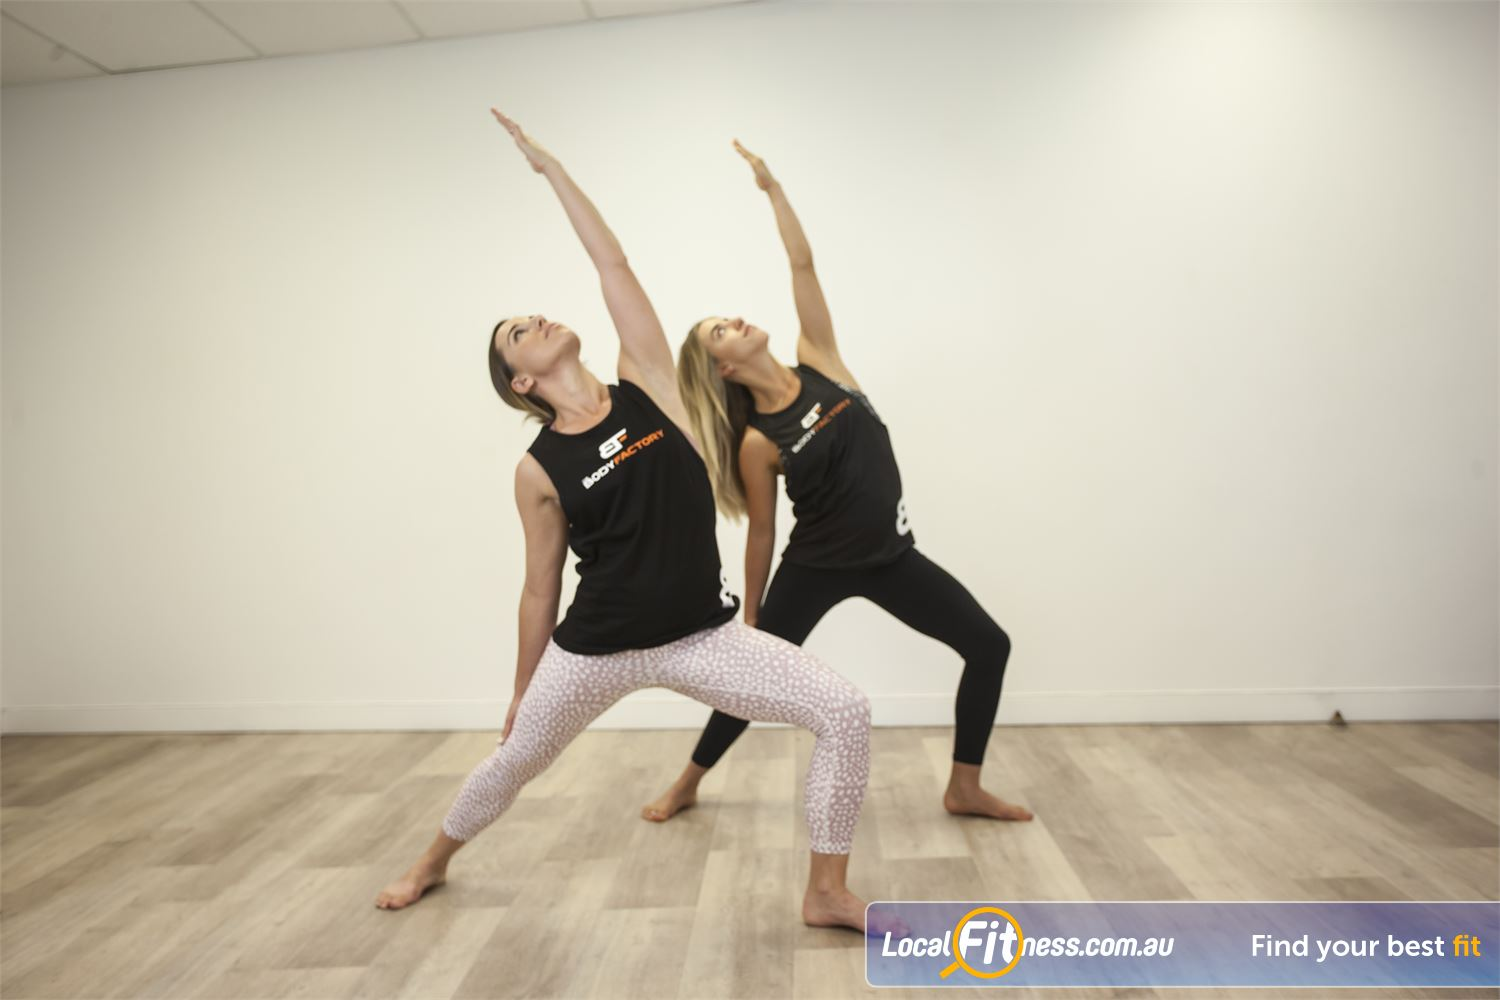 The Body Factory Caringbah Enjoy our full range of classes at The Body factory.